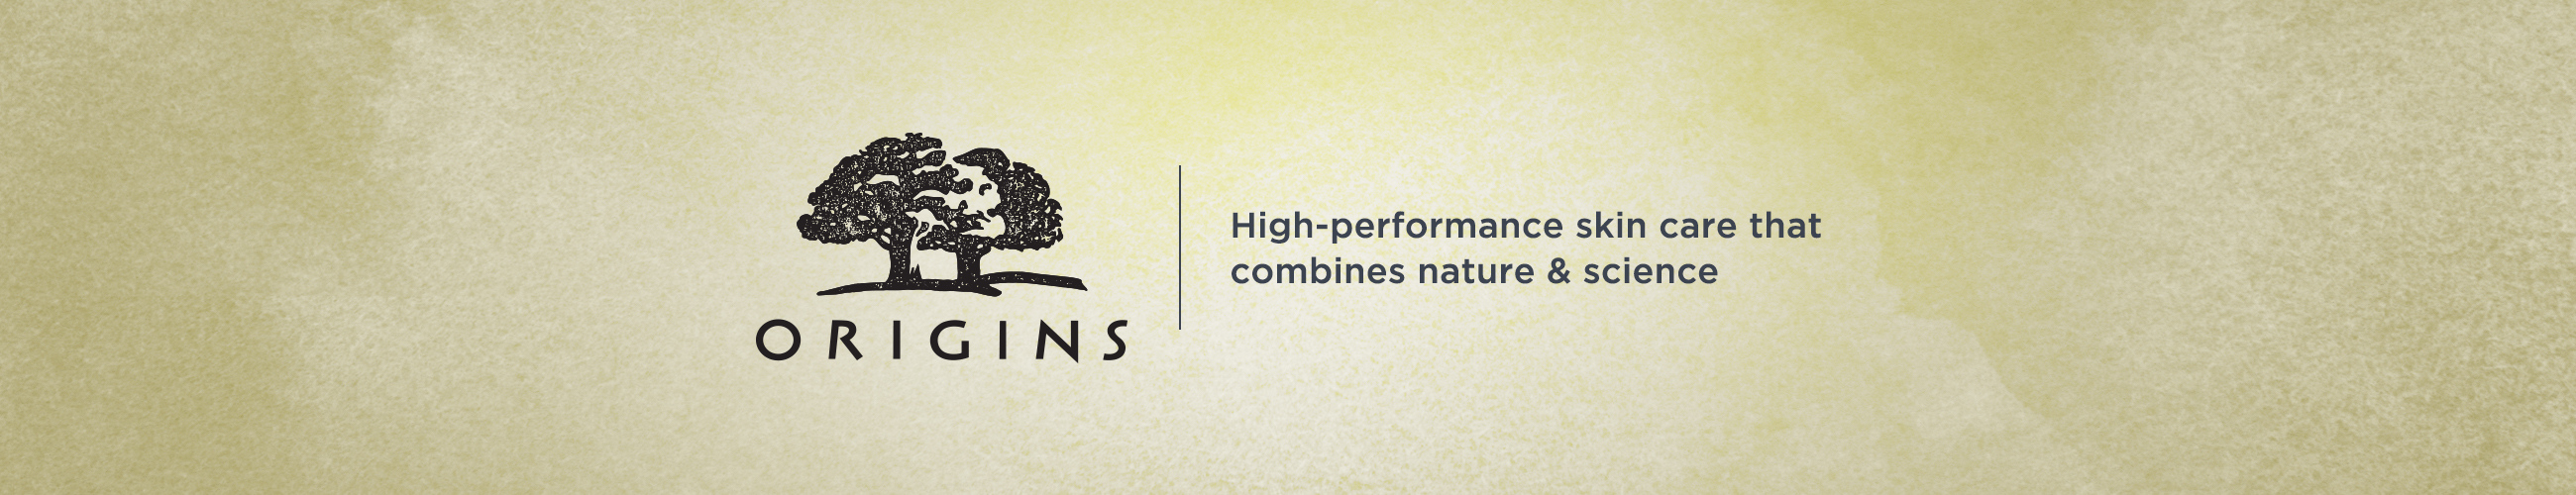 Origins.  High-performance skin care that combines nature & science